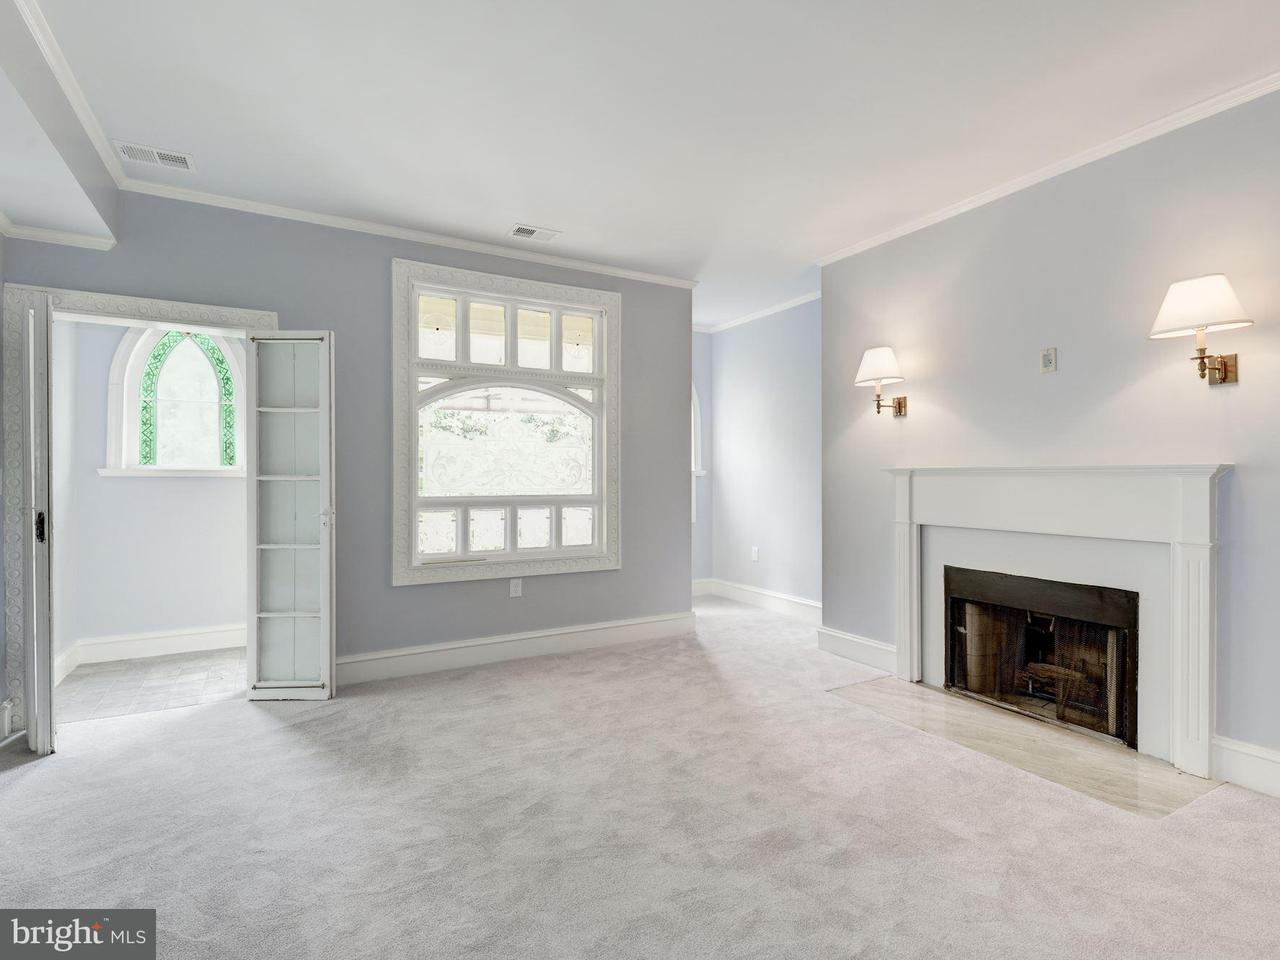 Additional photo for property listing at 528 8th St NE  Washington, District Of Columbia 20002 United States